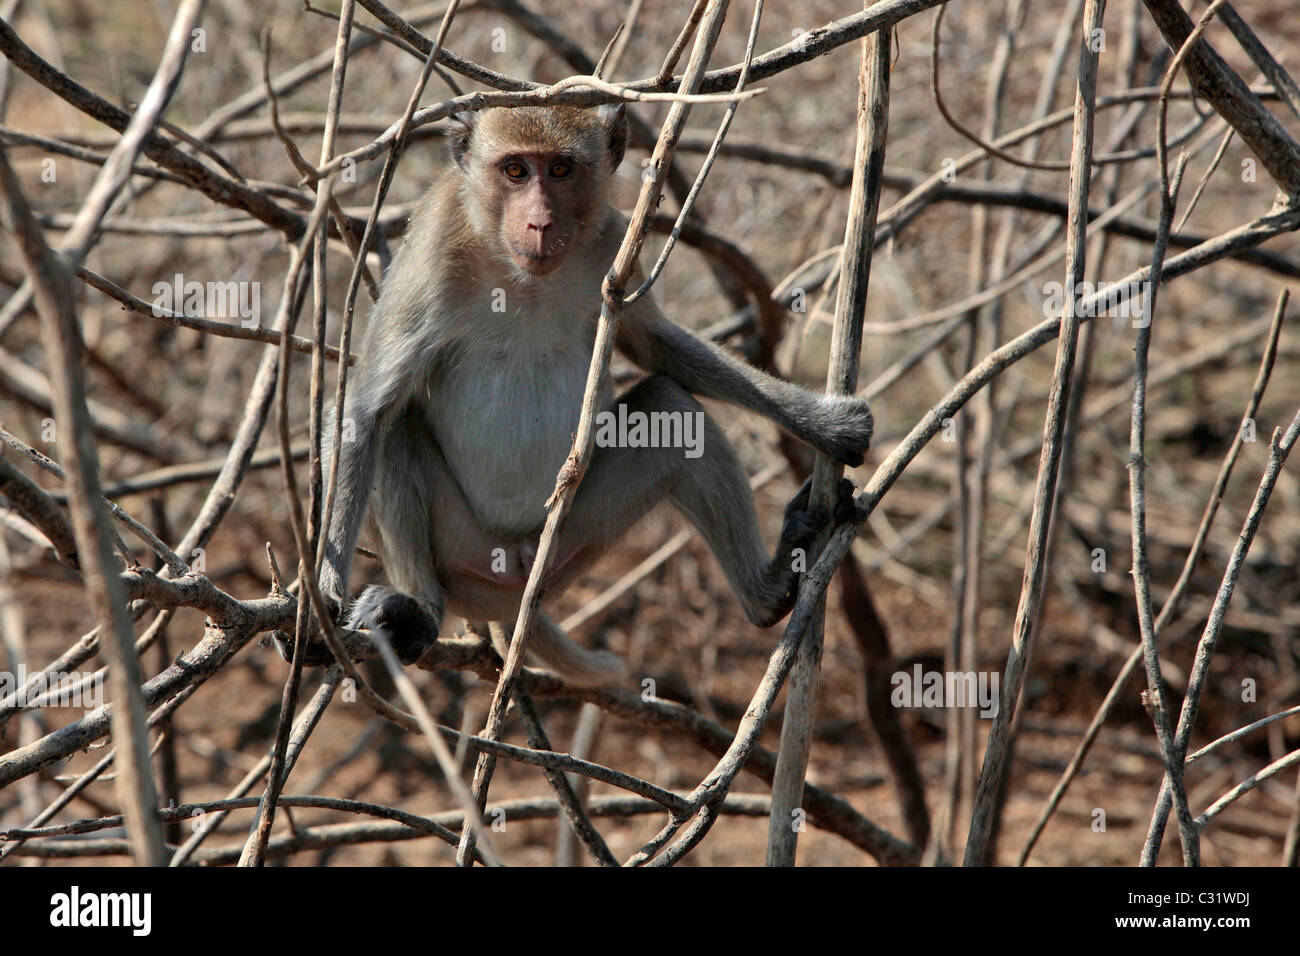 MACAQUE MONKEY IN THE BRANCHES, KAENG KRACHAN NATIONAL PARK, PHETCHABURI, THAILAND, ASIA Stock Photo